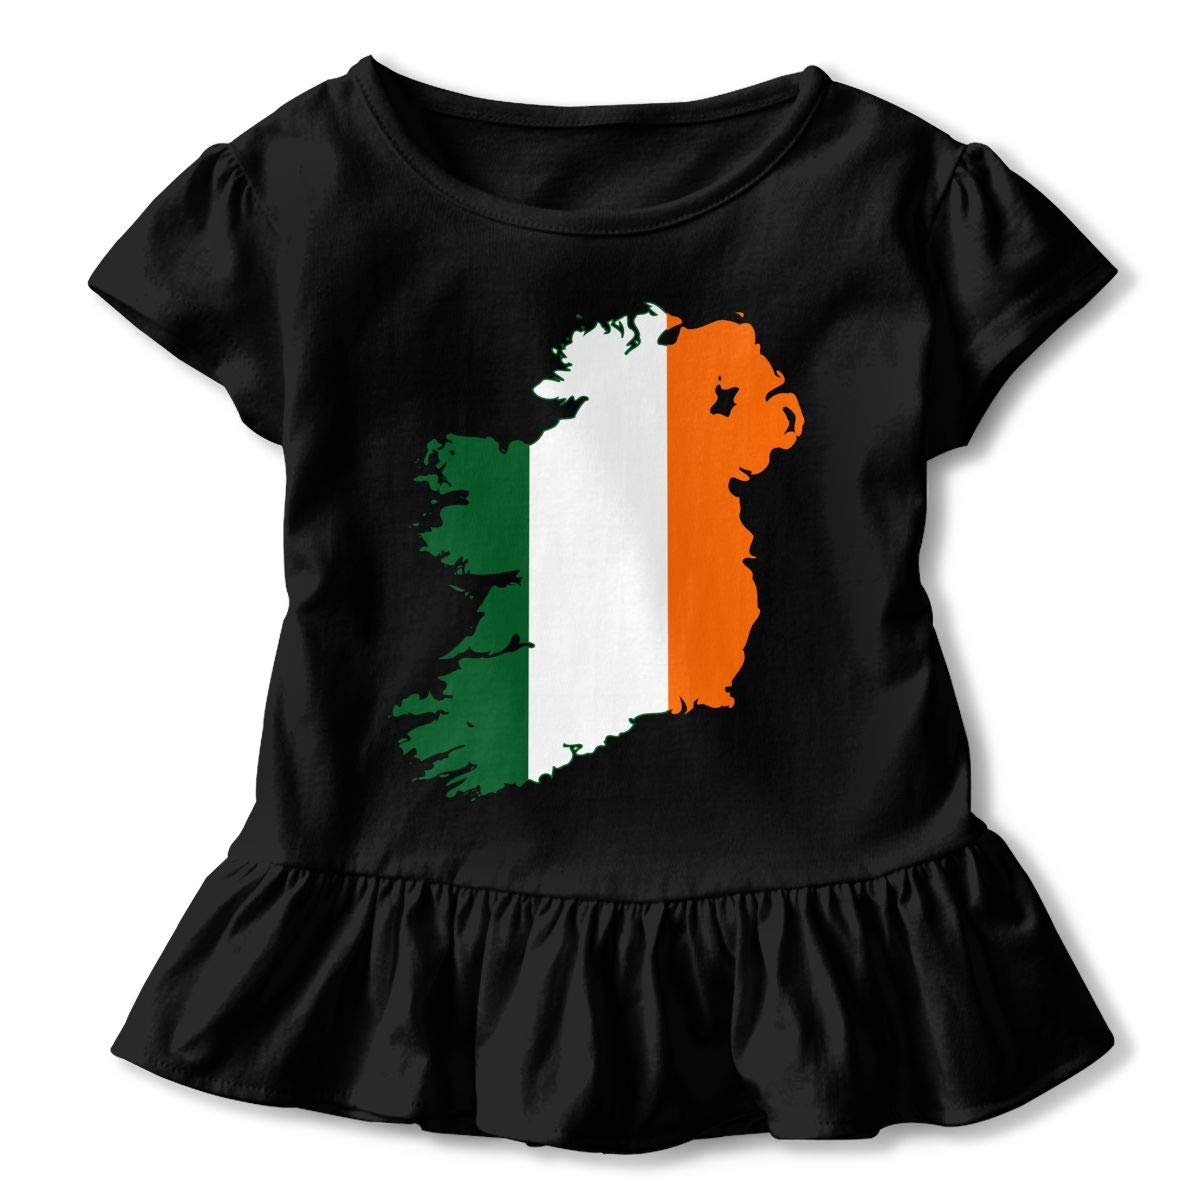 Flag Map of United Ireland Kids Girls Short Sleeve T-Shirts Ruffles Shirt T-Shirt for 2-6T